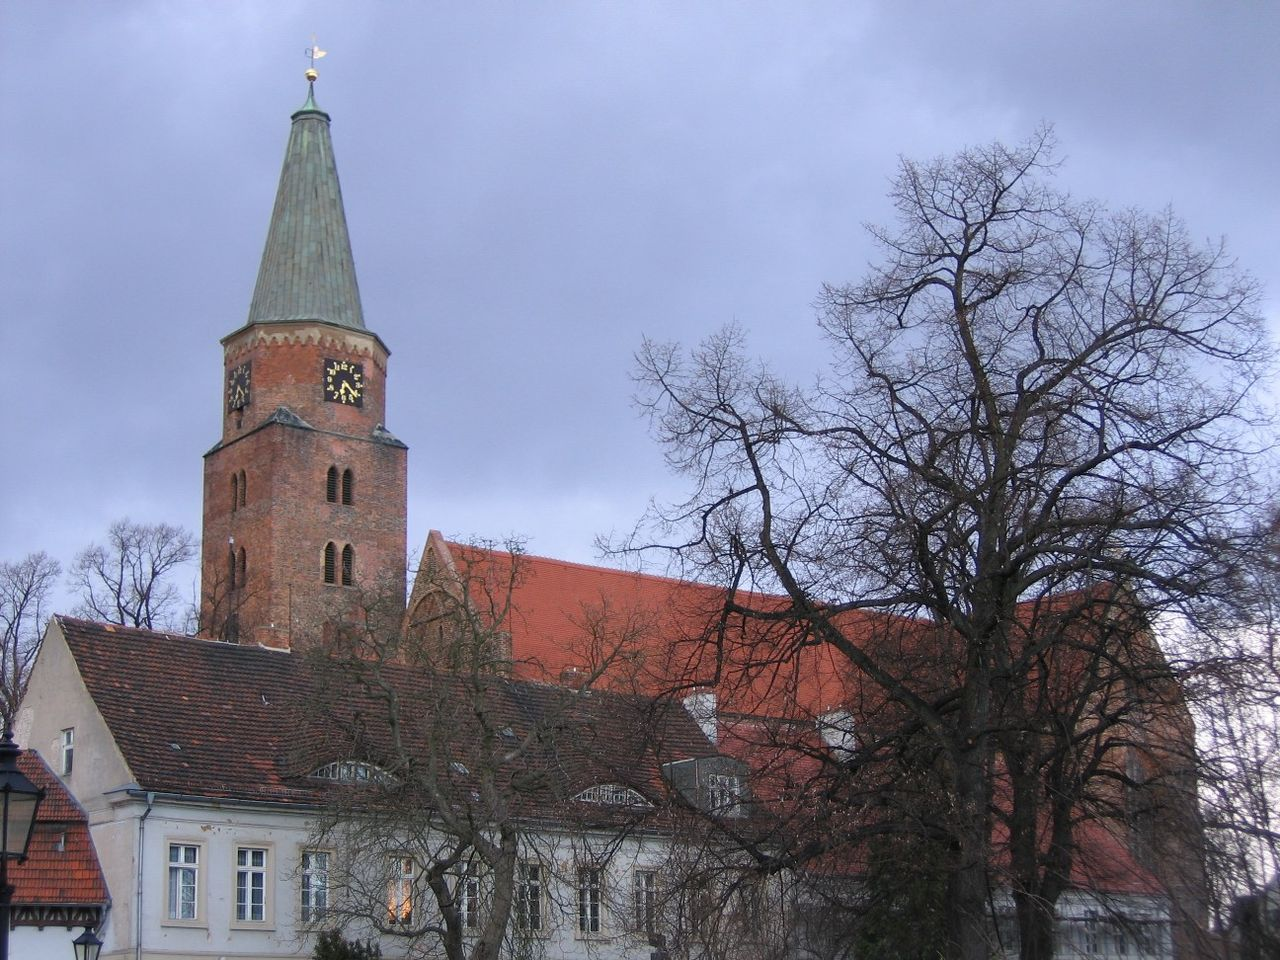 Dom zu Brandenburg an der Havel